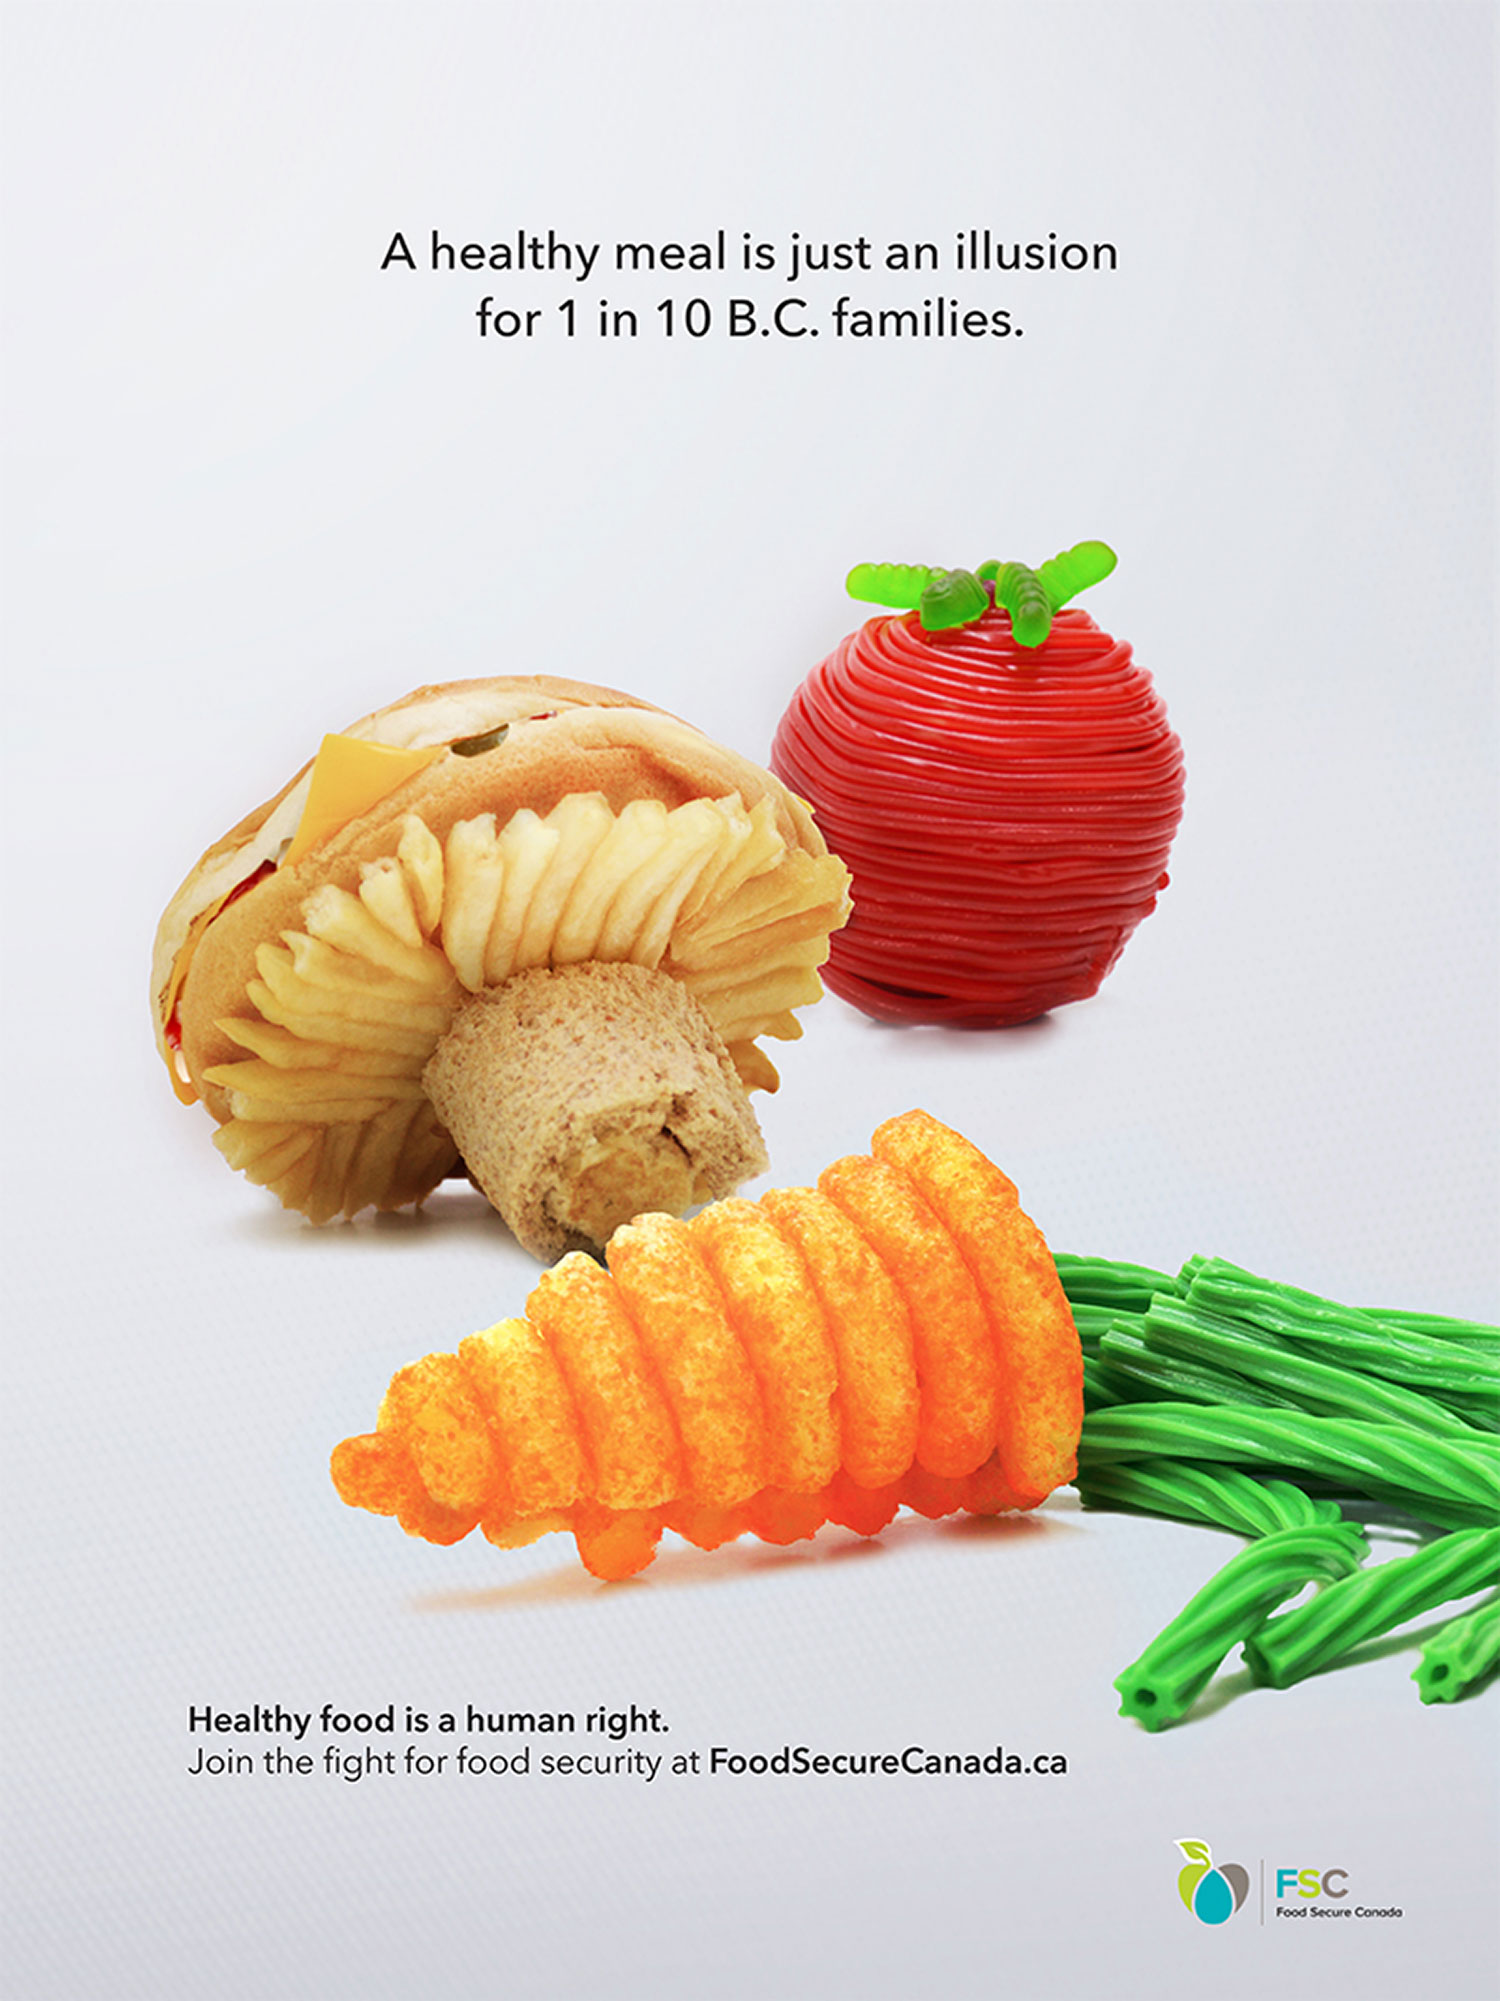 "For her world hunger campaign, Shay decided that she wanted to research what hunger looked like at home in Canada, and specifically British Columbia. In her research, she found that 1 in 10 B.C. families can't afford healthy food on a regular basis, and that this is called ""food insecurity"". Her print ad aims to bring awareness to this issue by showing the audience that for someone going through food insecurity, healthy food is elusive.  ""The idea came to me pretty fast,"" says Shay. It was one of her top five first ideas and she knew it was a good one. The process of constructing the food and photographing it took one afternoon! ""Overall, it was a super quick ideation and production of everything!"" she says."